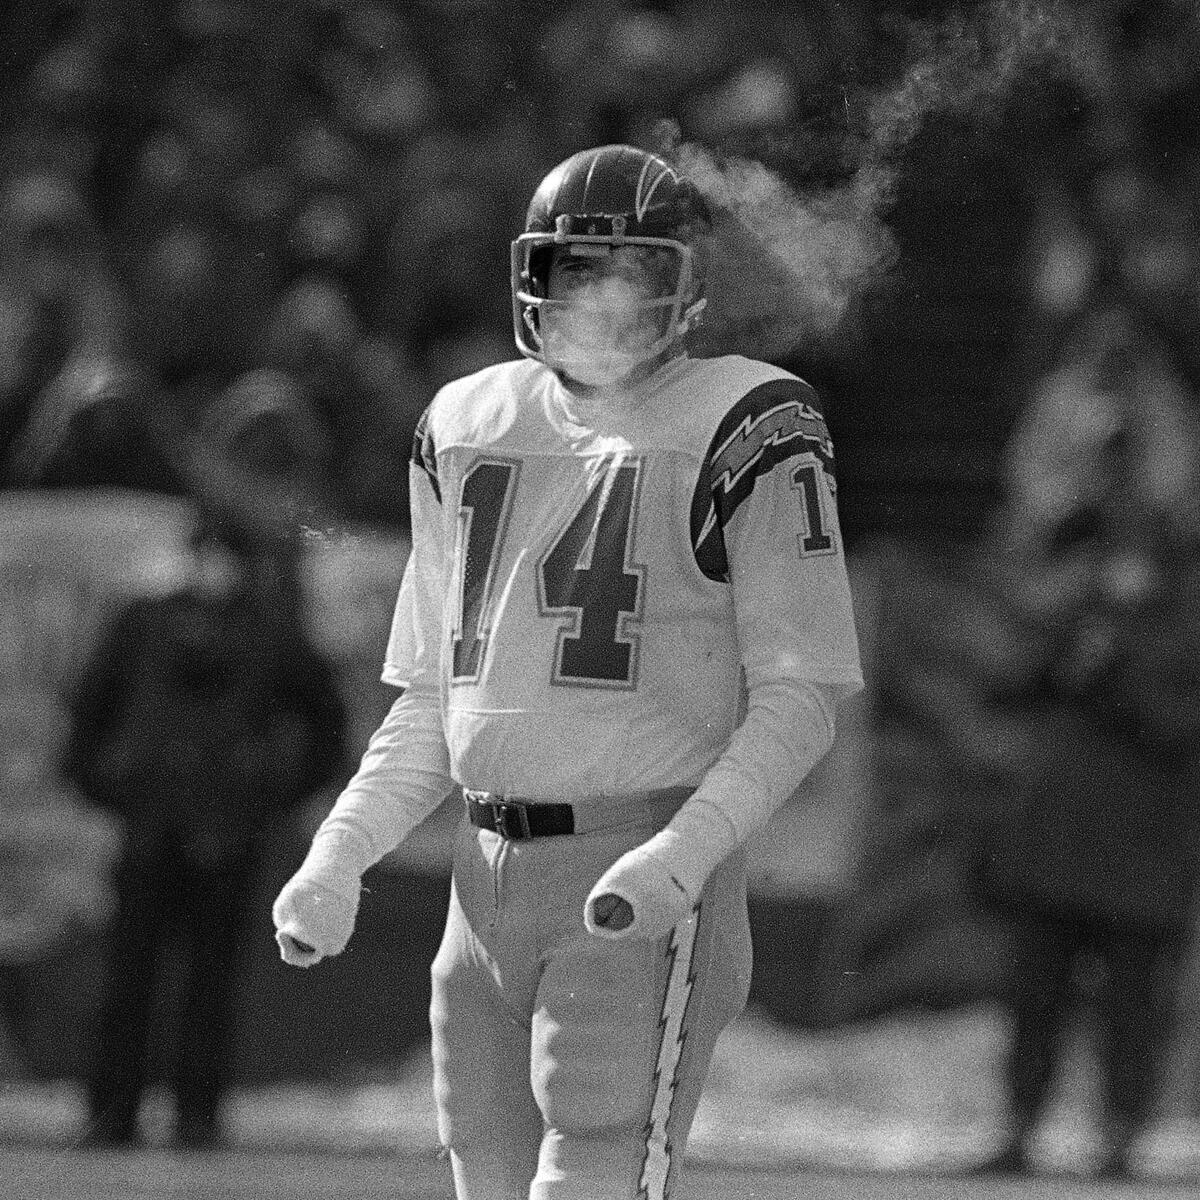 The last time @Bengals & @Chargers met in the playoffs, it was in the coldest wind-chill in NFL history. #FreezerBowl http://t.co/gpnJOK3zz3